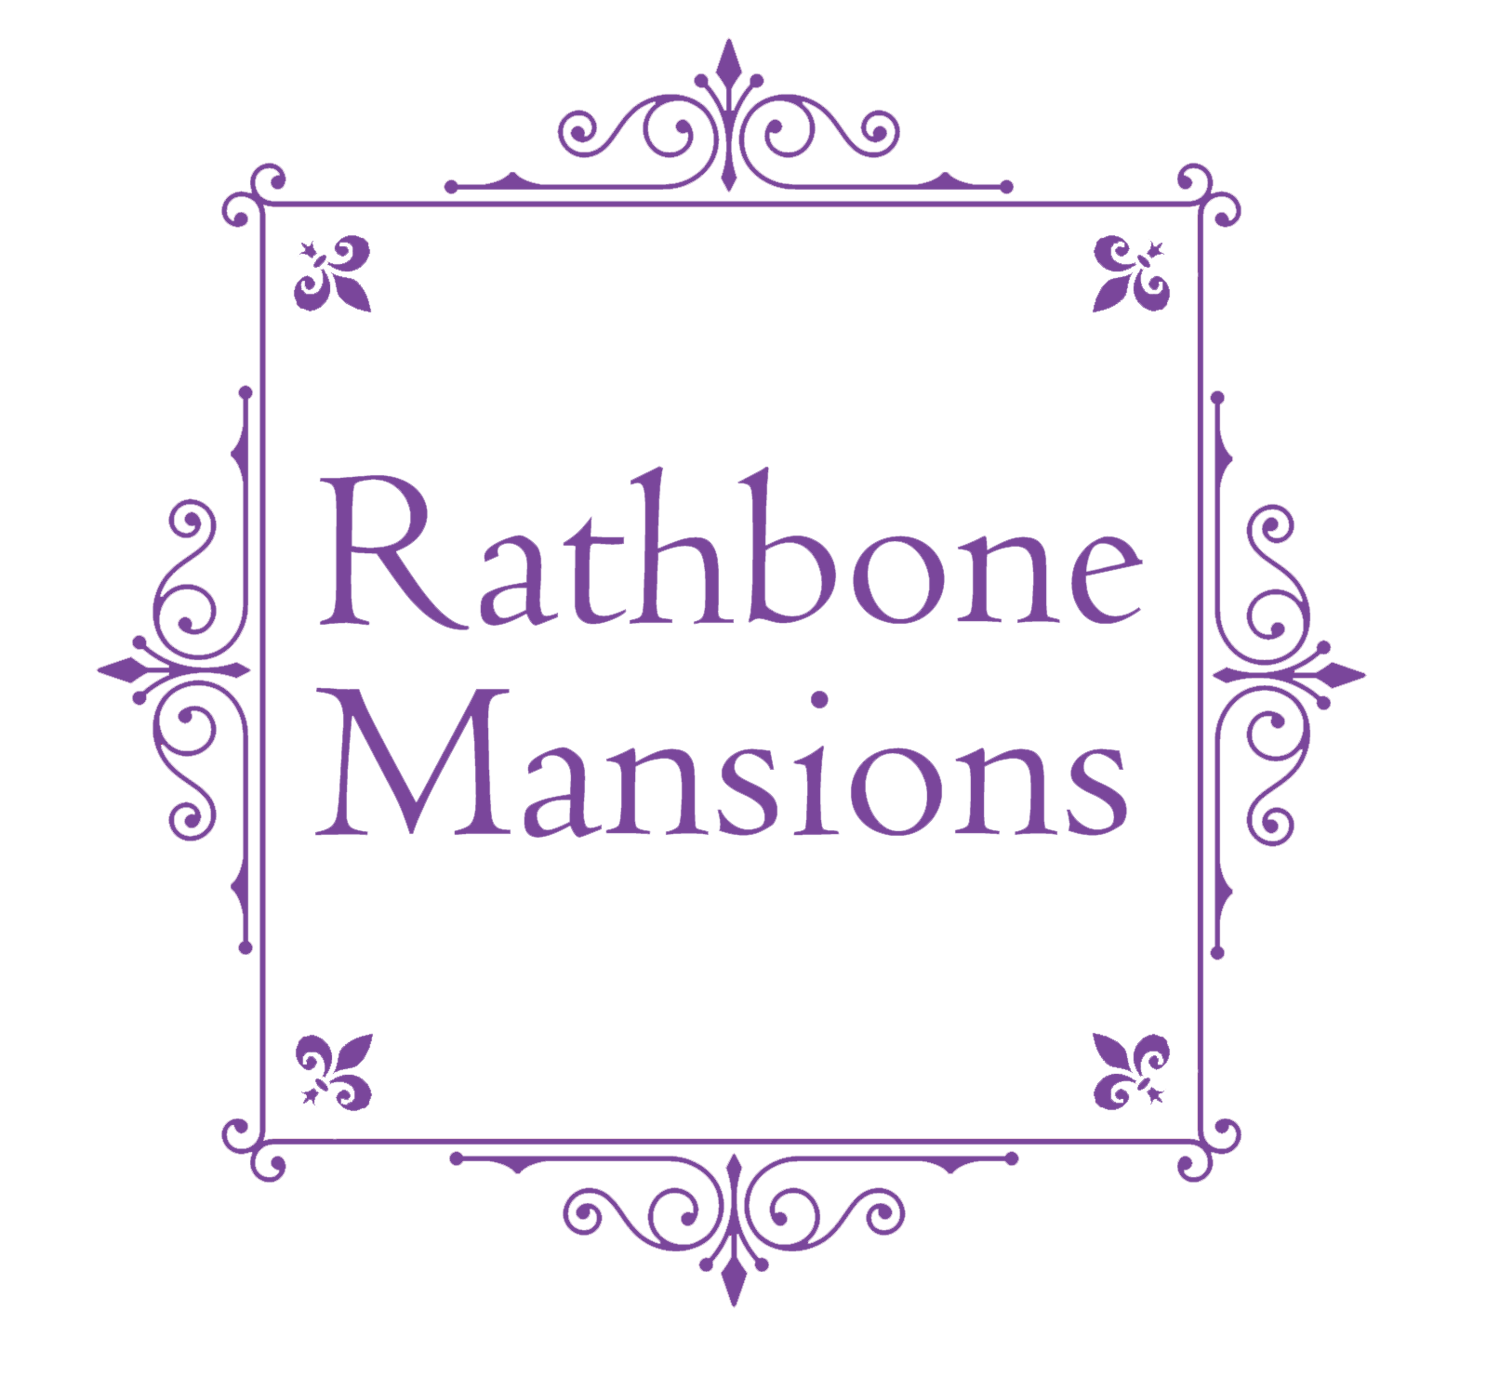 Rathbone Mansions